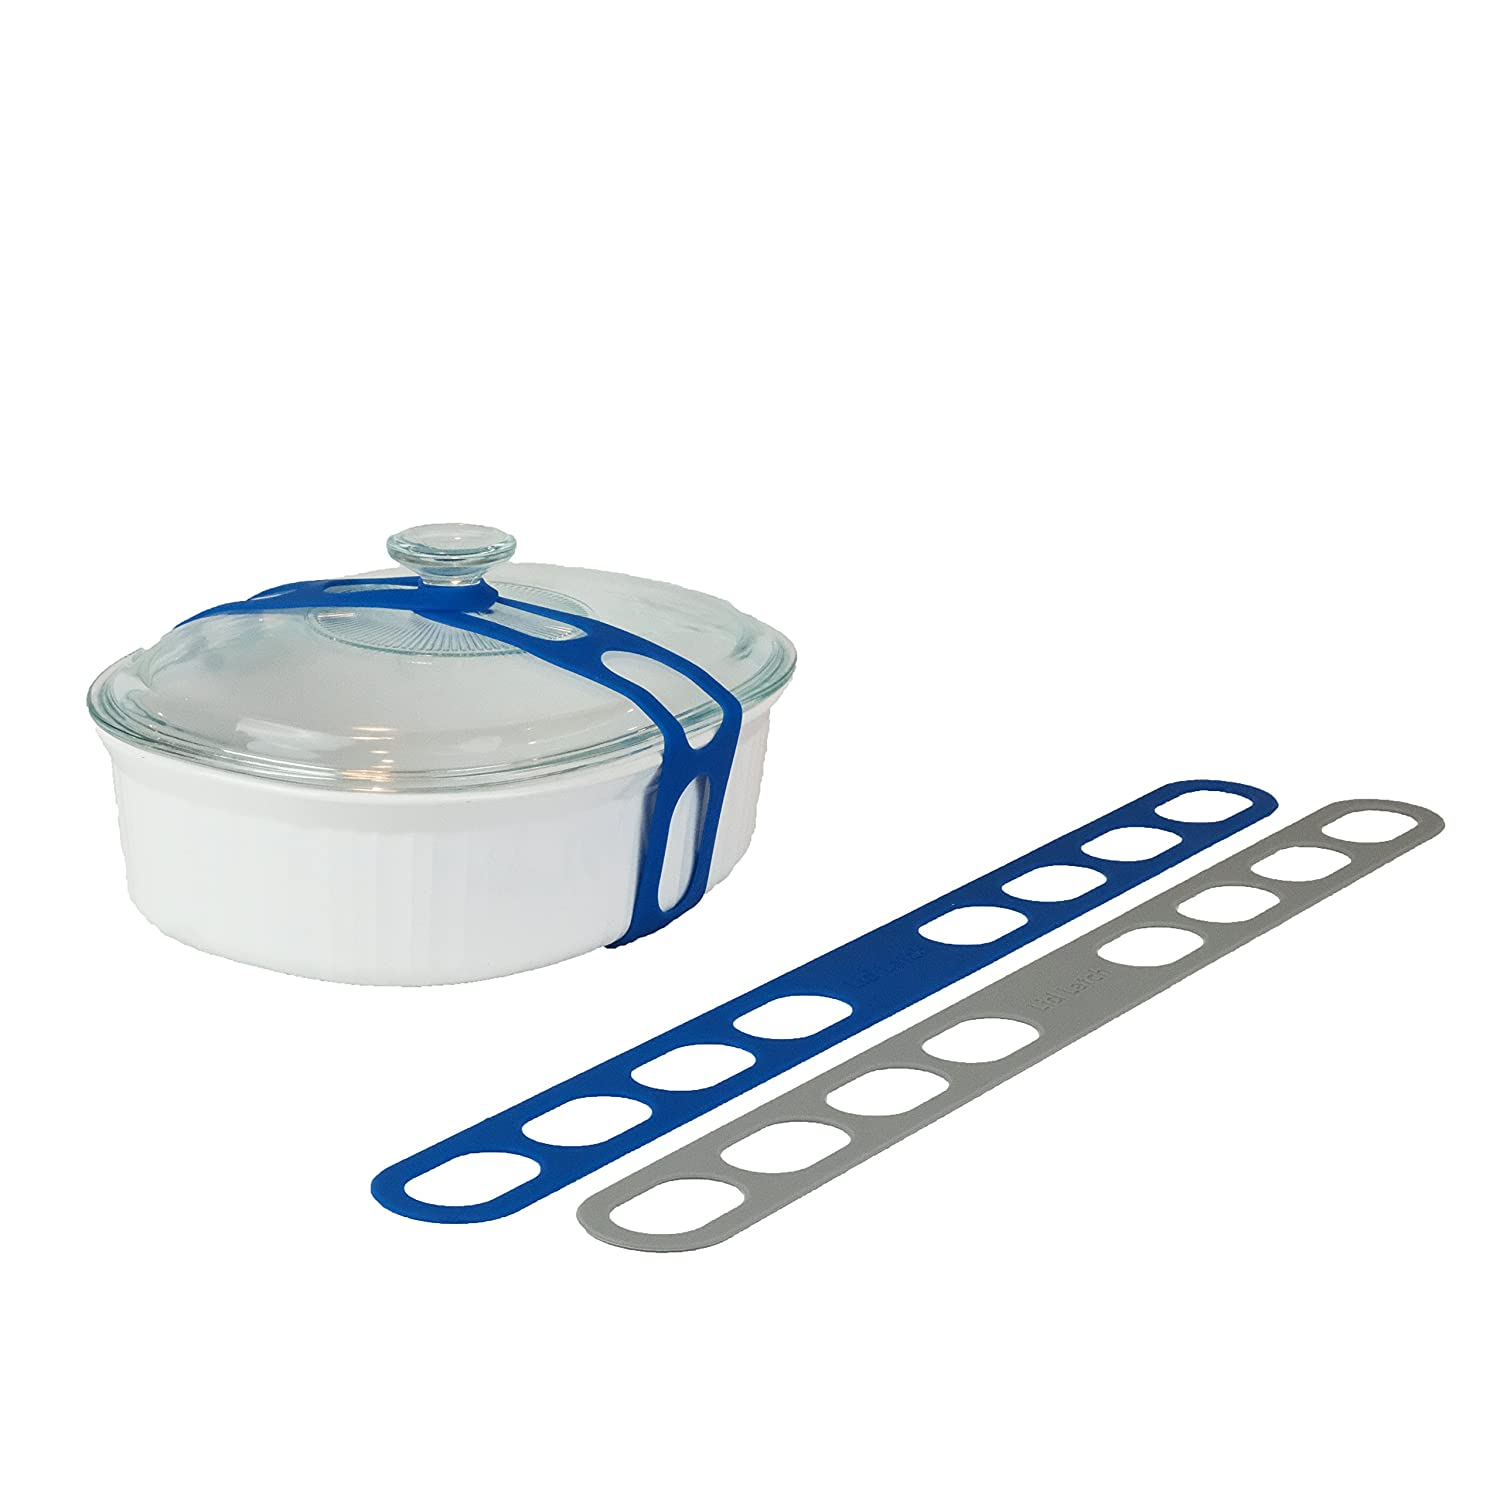 Lid Latch the reusable universal lid securing strap for crockpots, casserole dishes, pots, pans and more. Make it easy to transport your favorite dishes with one simple strap. (2 Pack Grey/Blue)